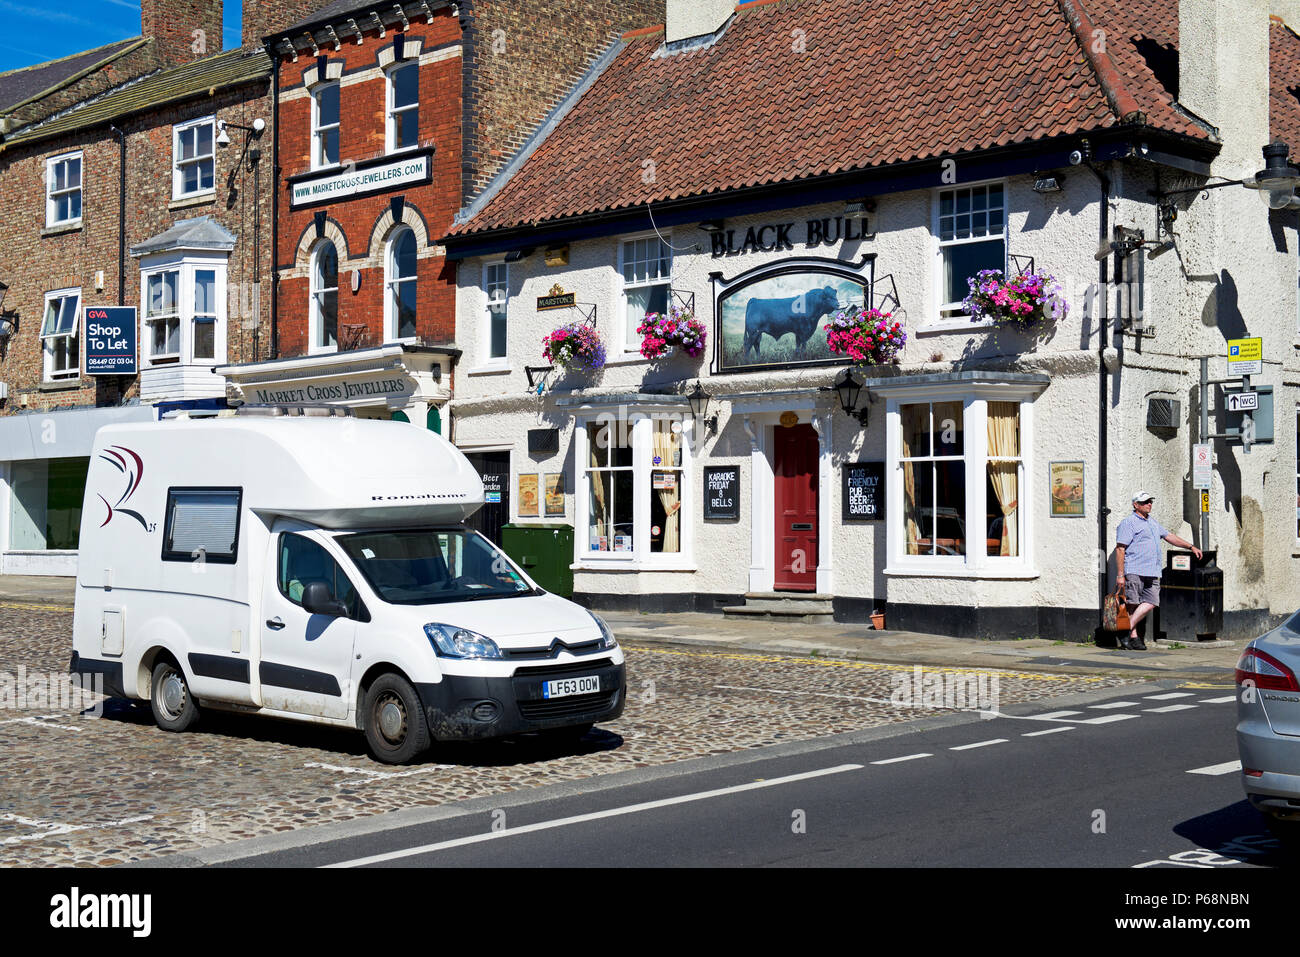 Romahome 25, small camper van, parked in Thirsk, North Yorkshire, England UK - Stock Image